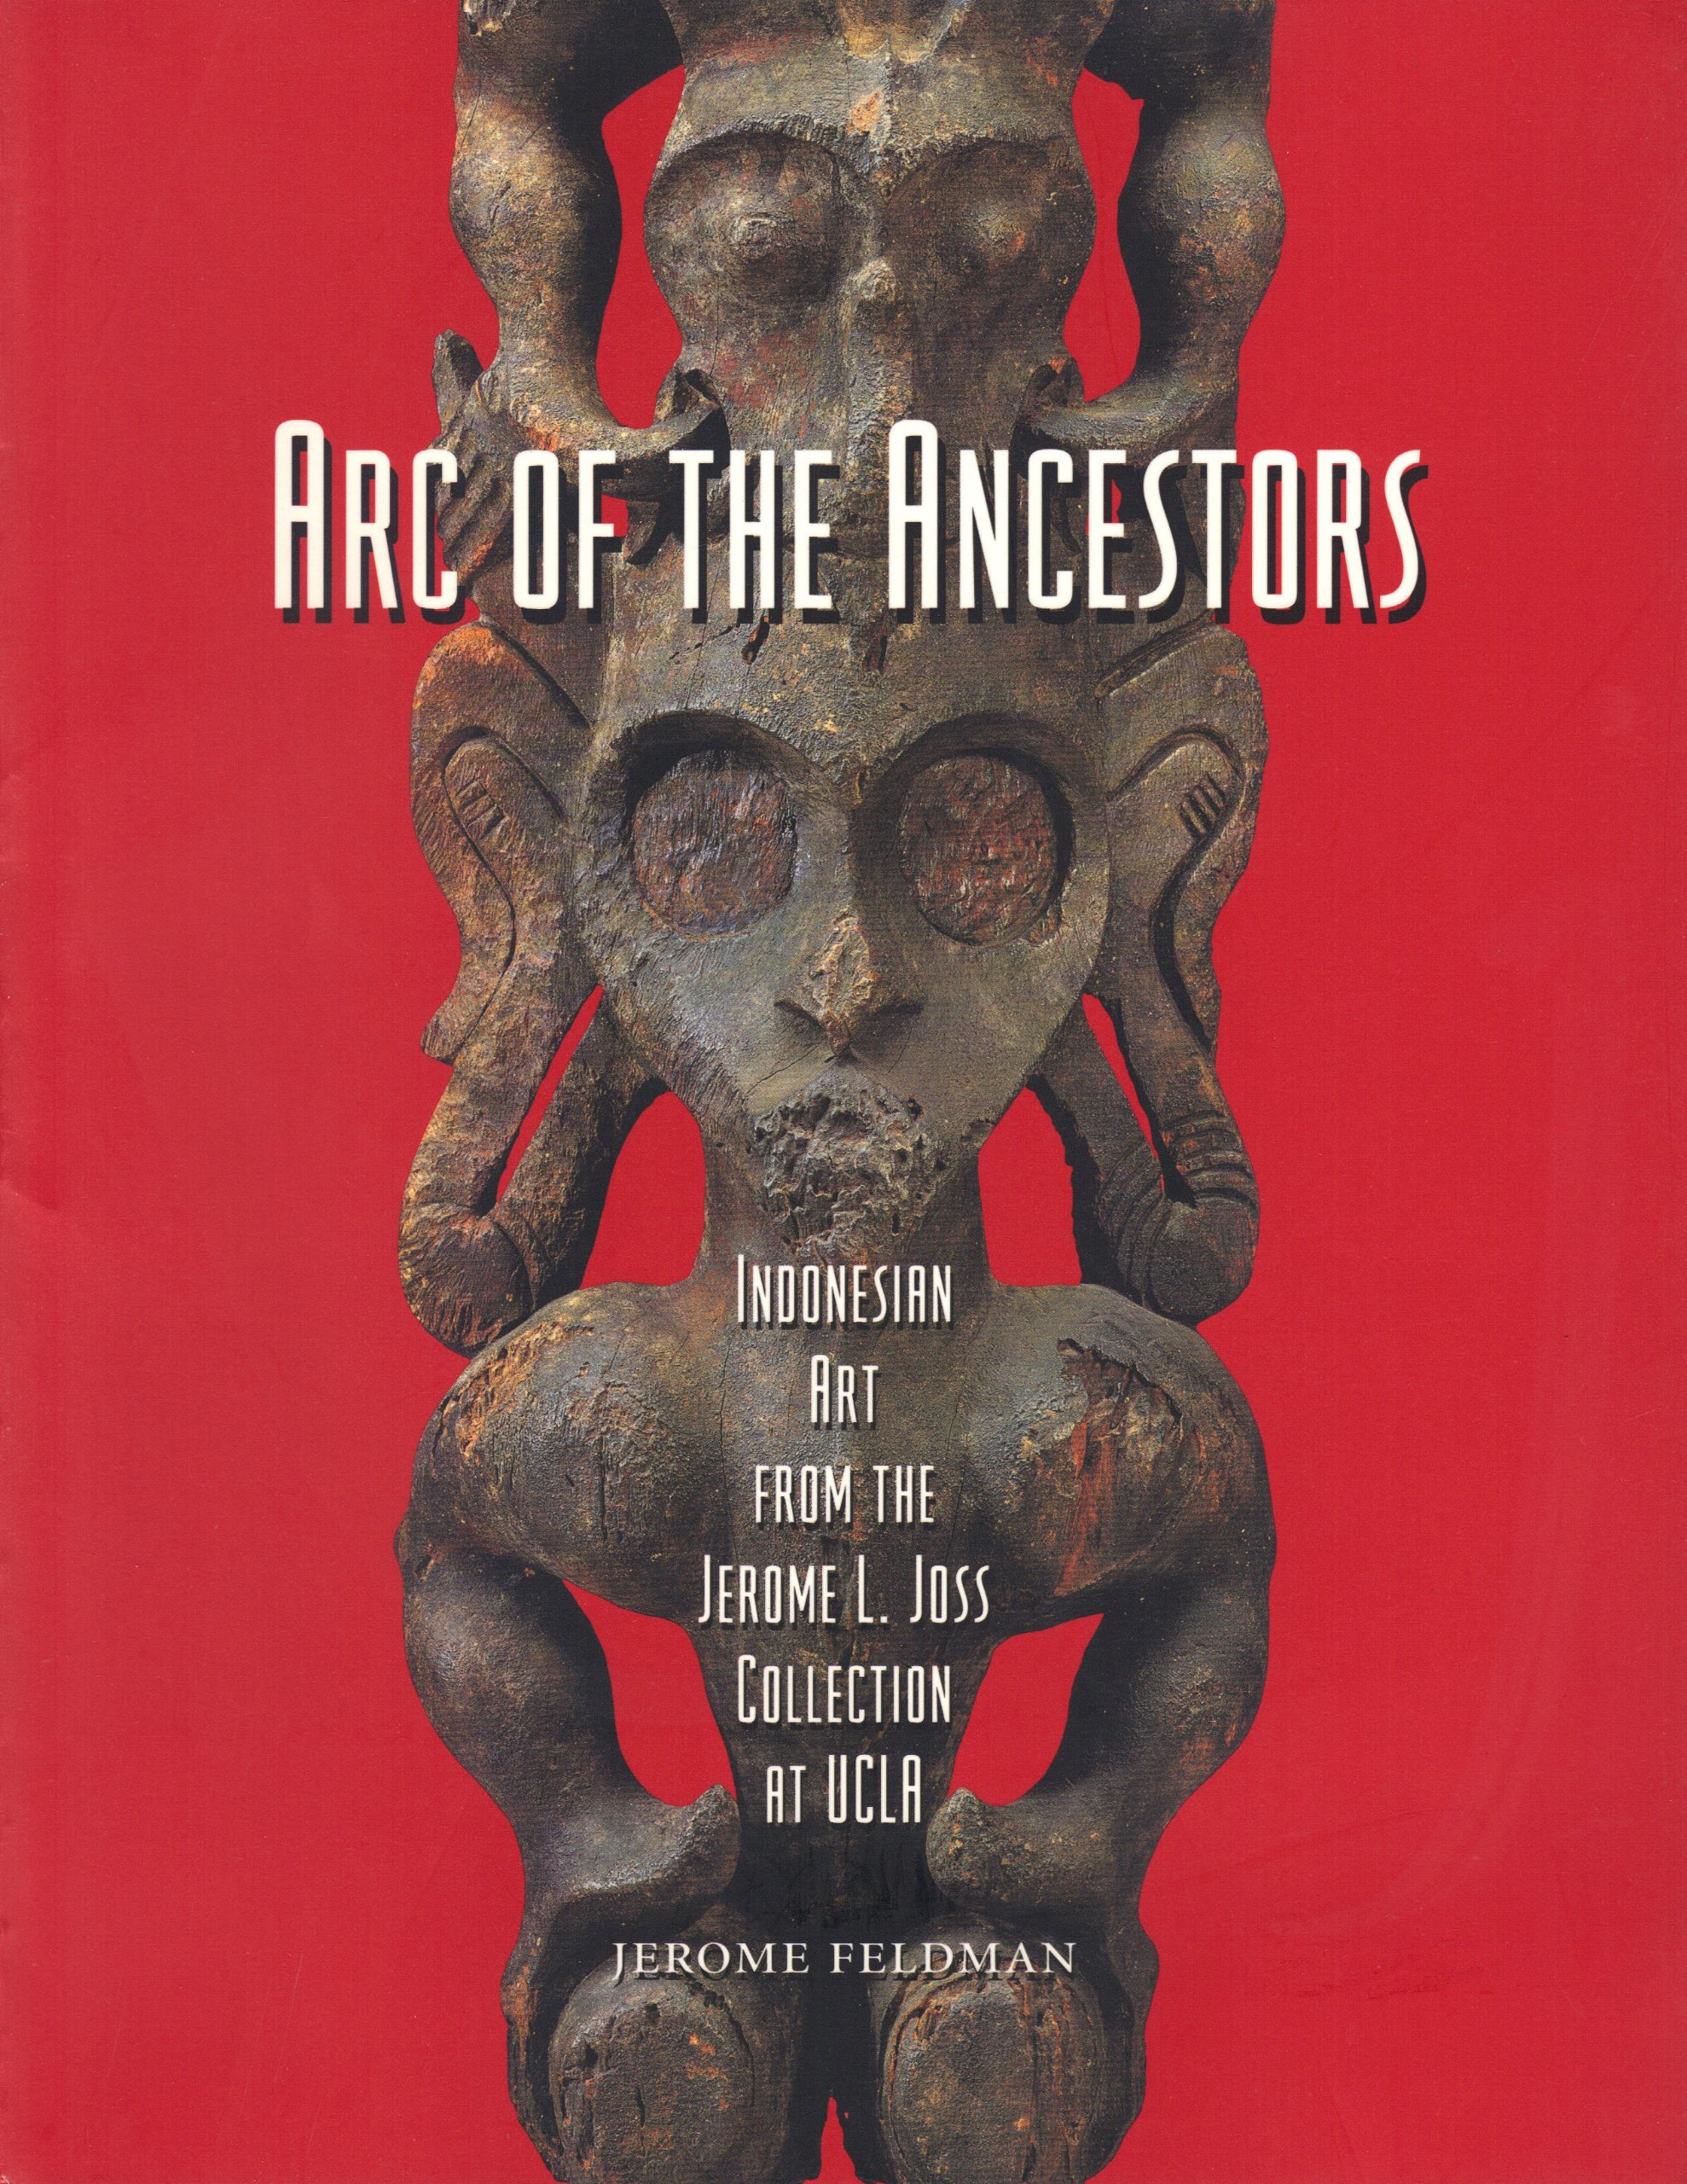 Arc of the Ancestors Indonesian Art from the Jerome L. Joss Collection at UCLA Jerome Feldman